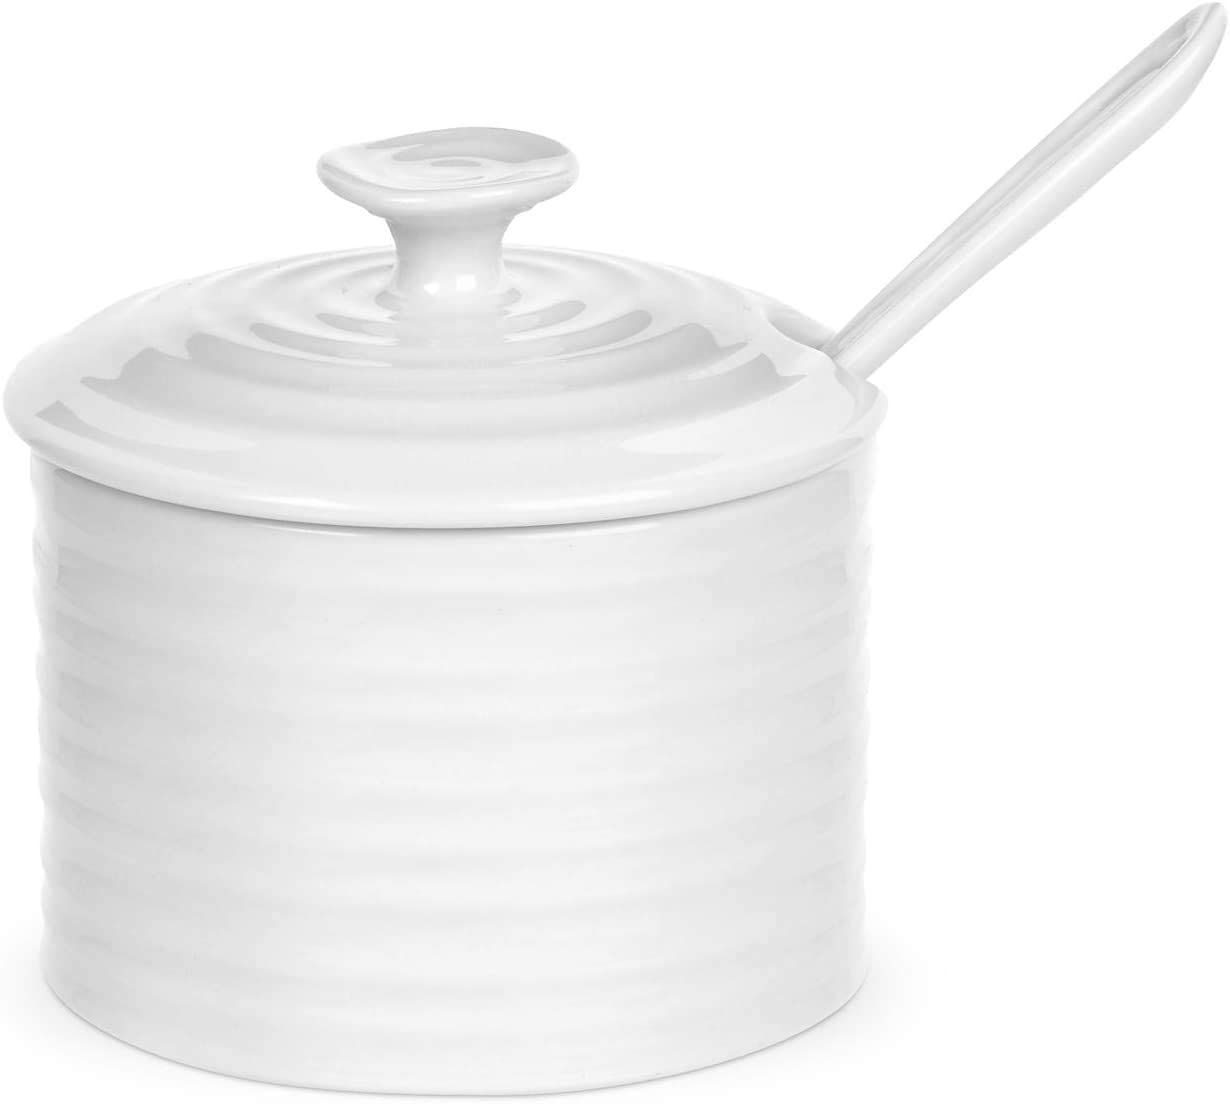 Portmeirion Sophie Conran White Conserve Pot with Spoon